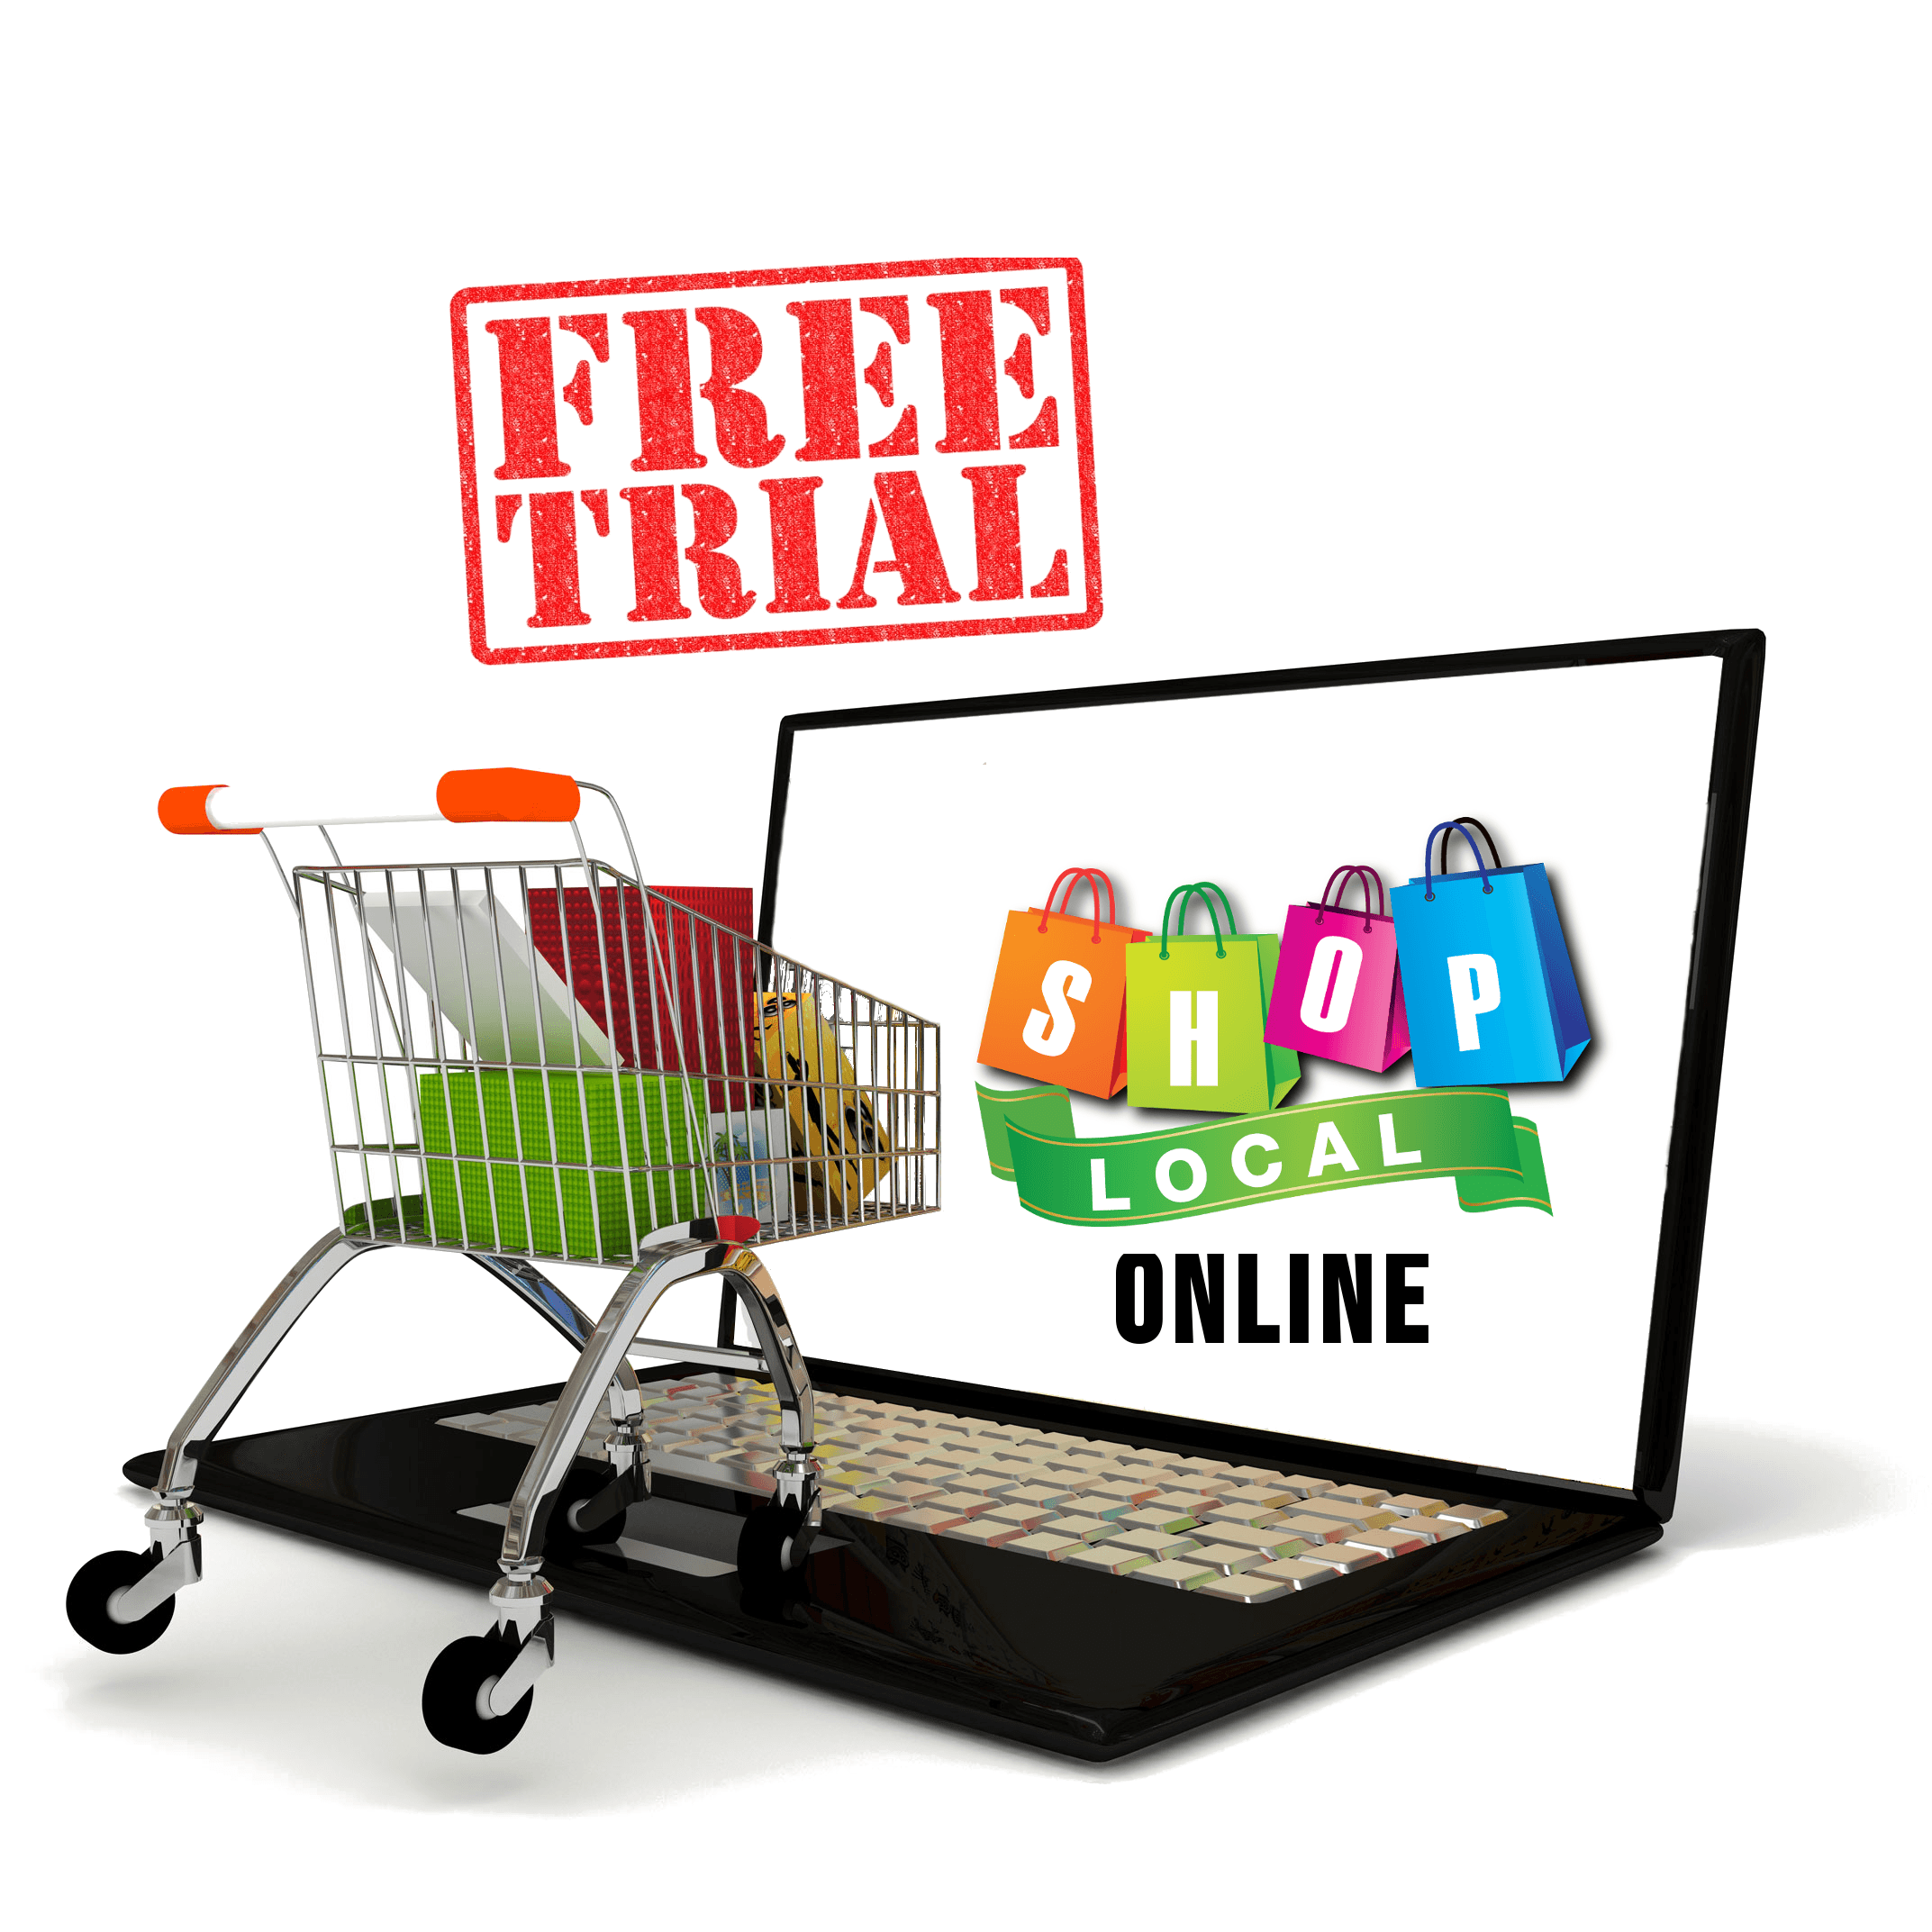 Online shop software free